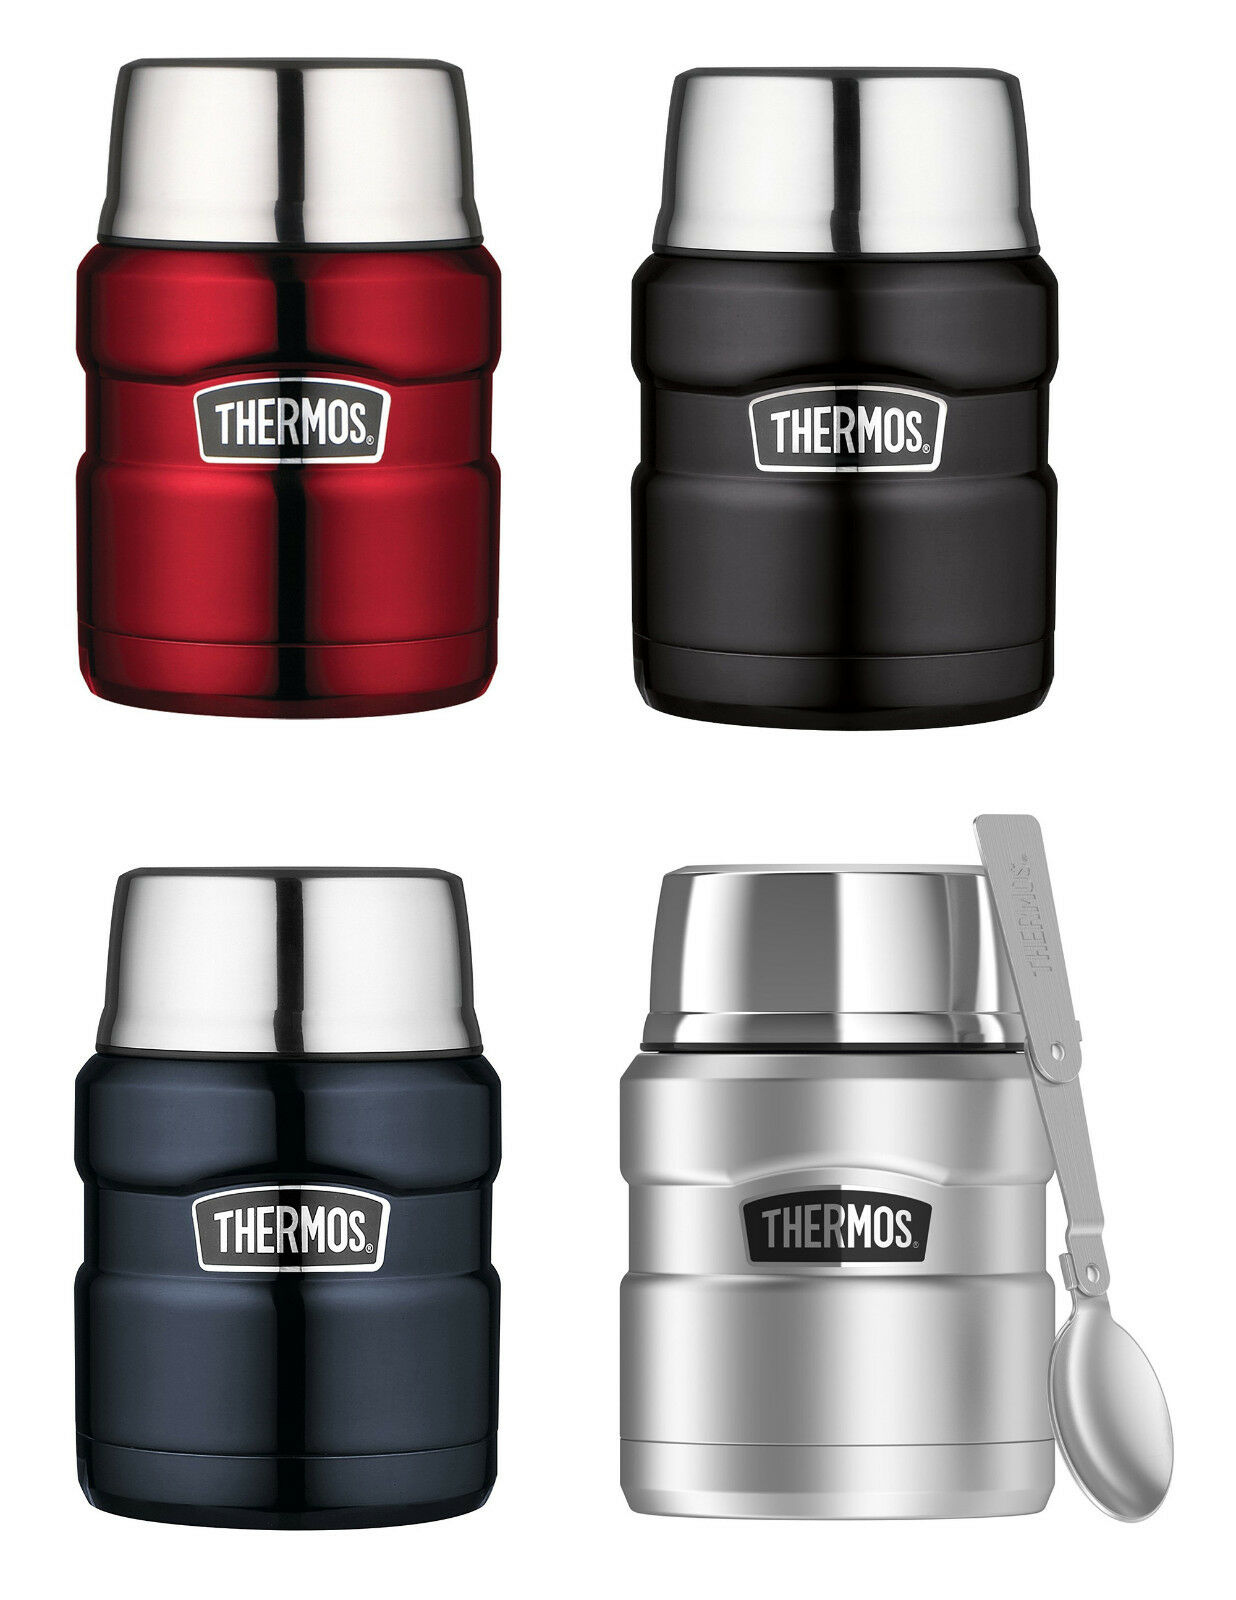 Thermos Stainless Steel King 16-Ounce Food Jars with Folding Spoons